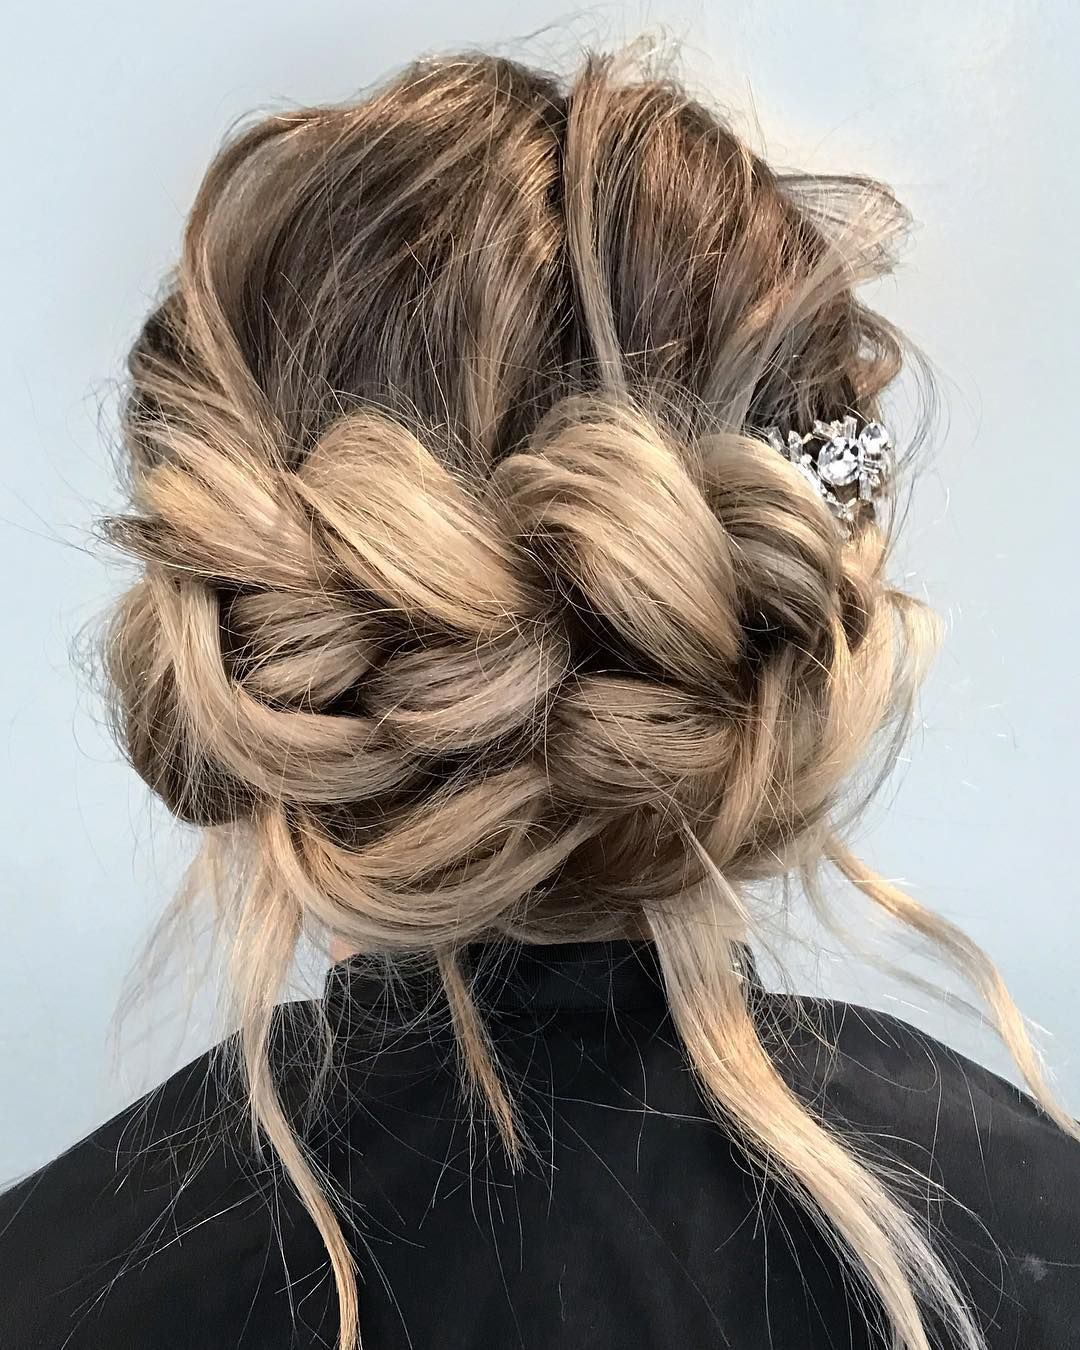 Hairstyle inspiration : Hair by Brittany Novotny